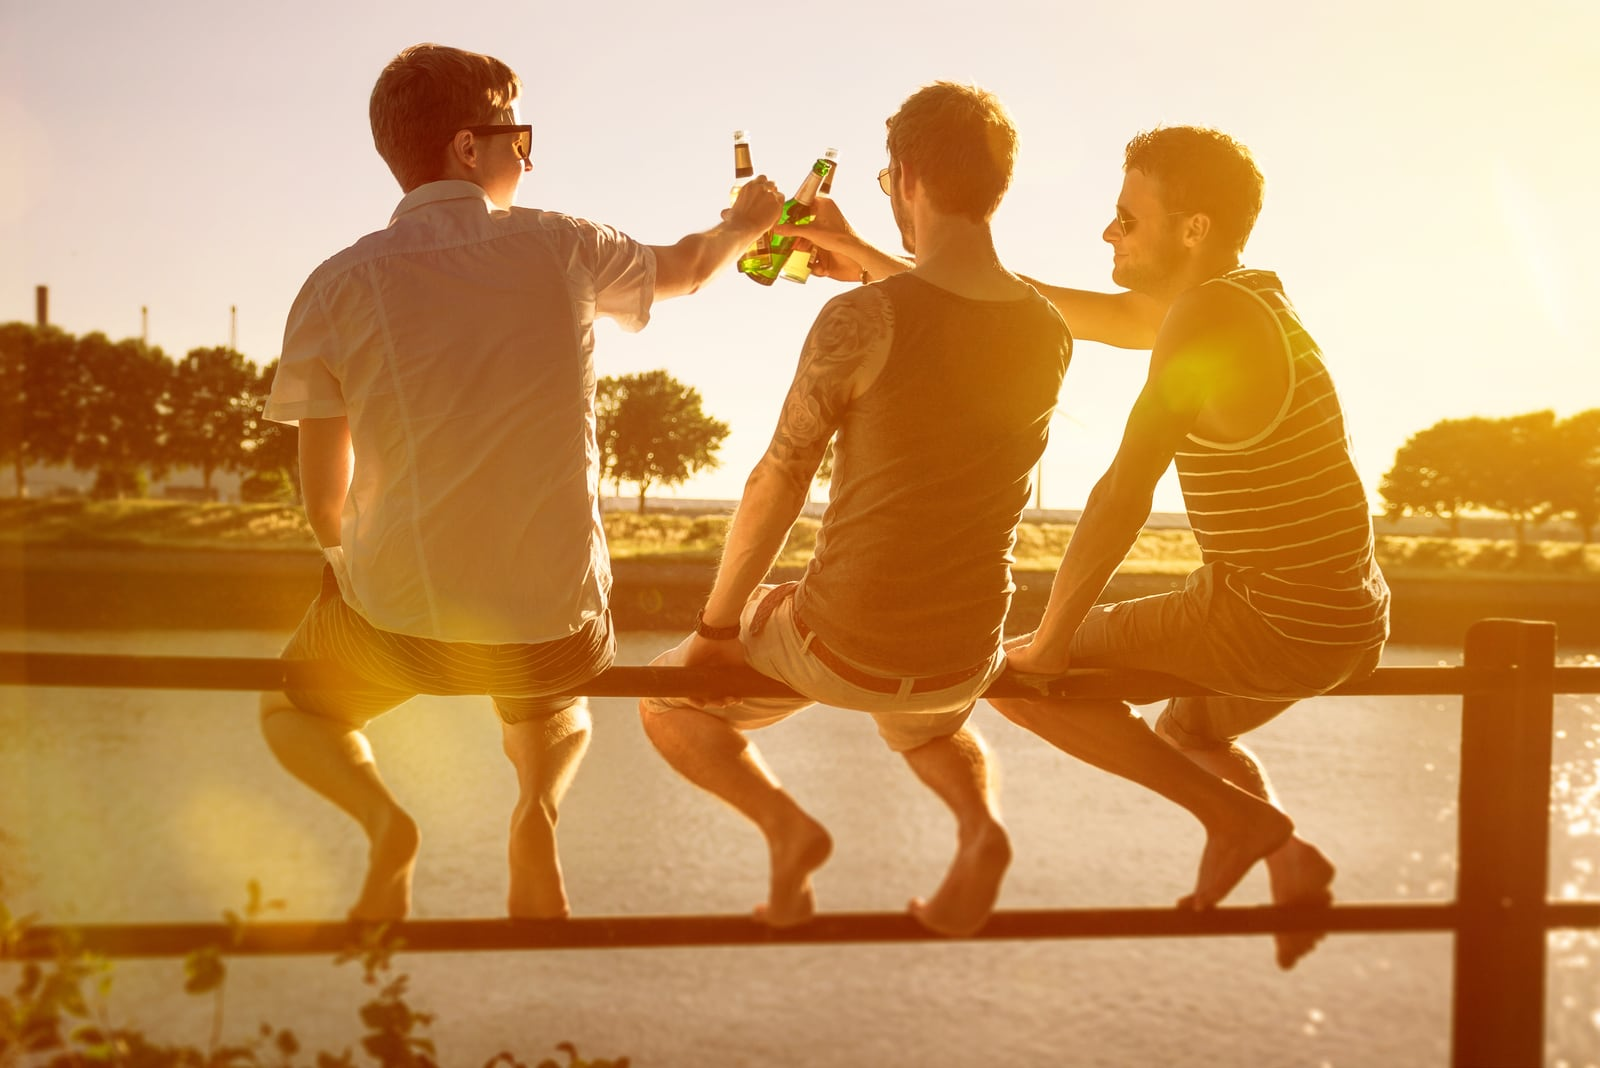 three friends sit on the fence and drink beer